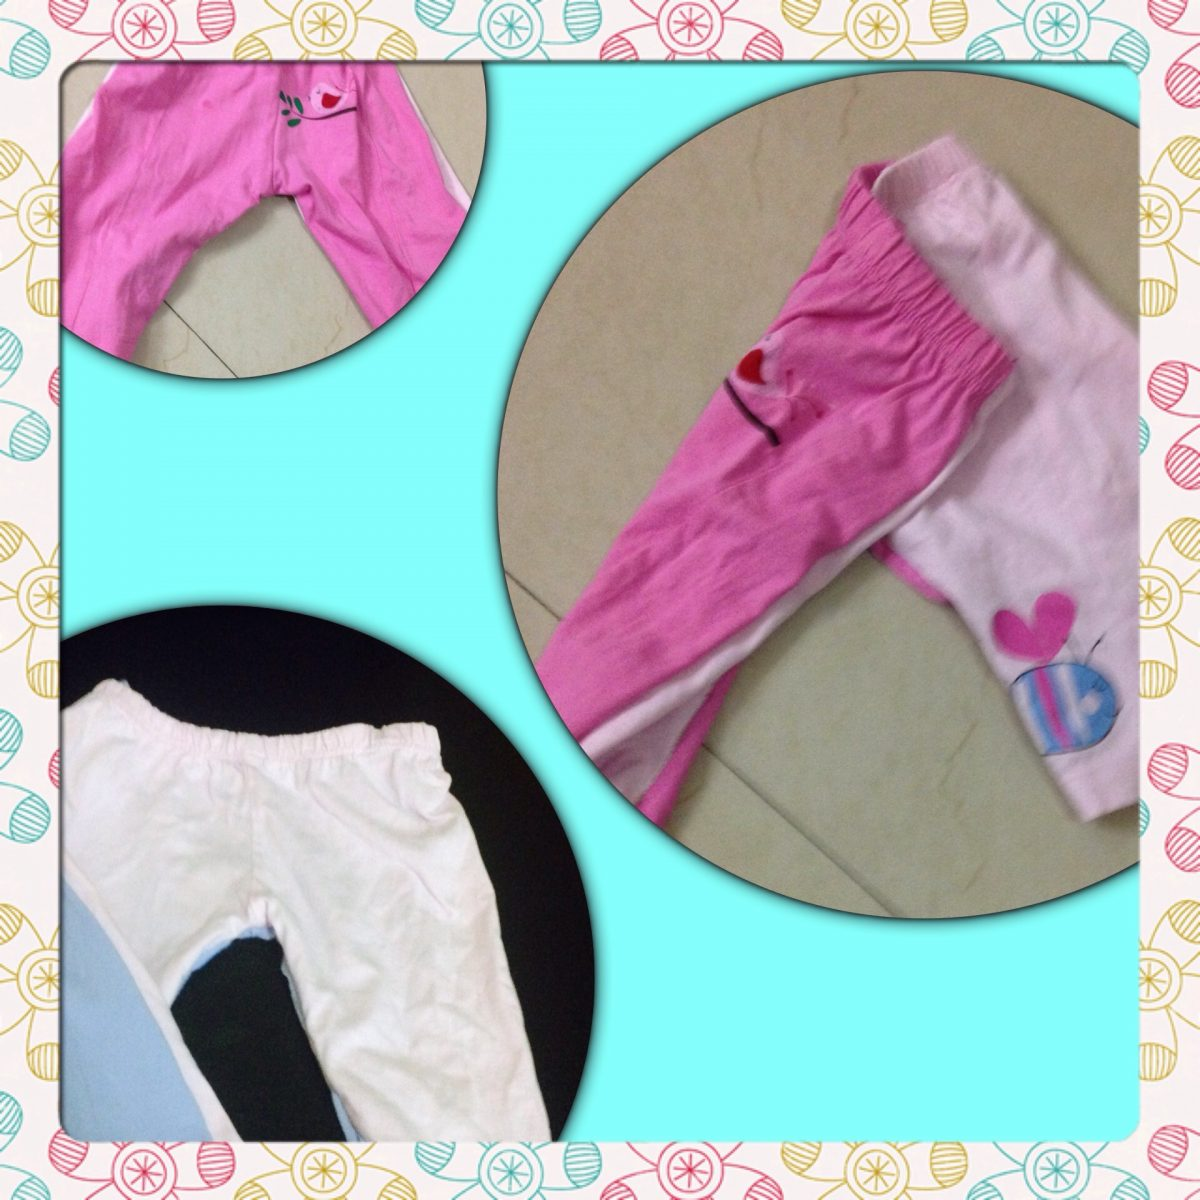 Sewing fun : pant from pants for kids